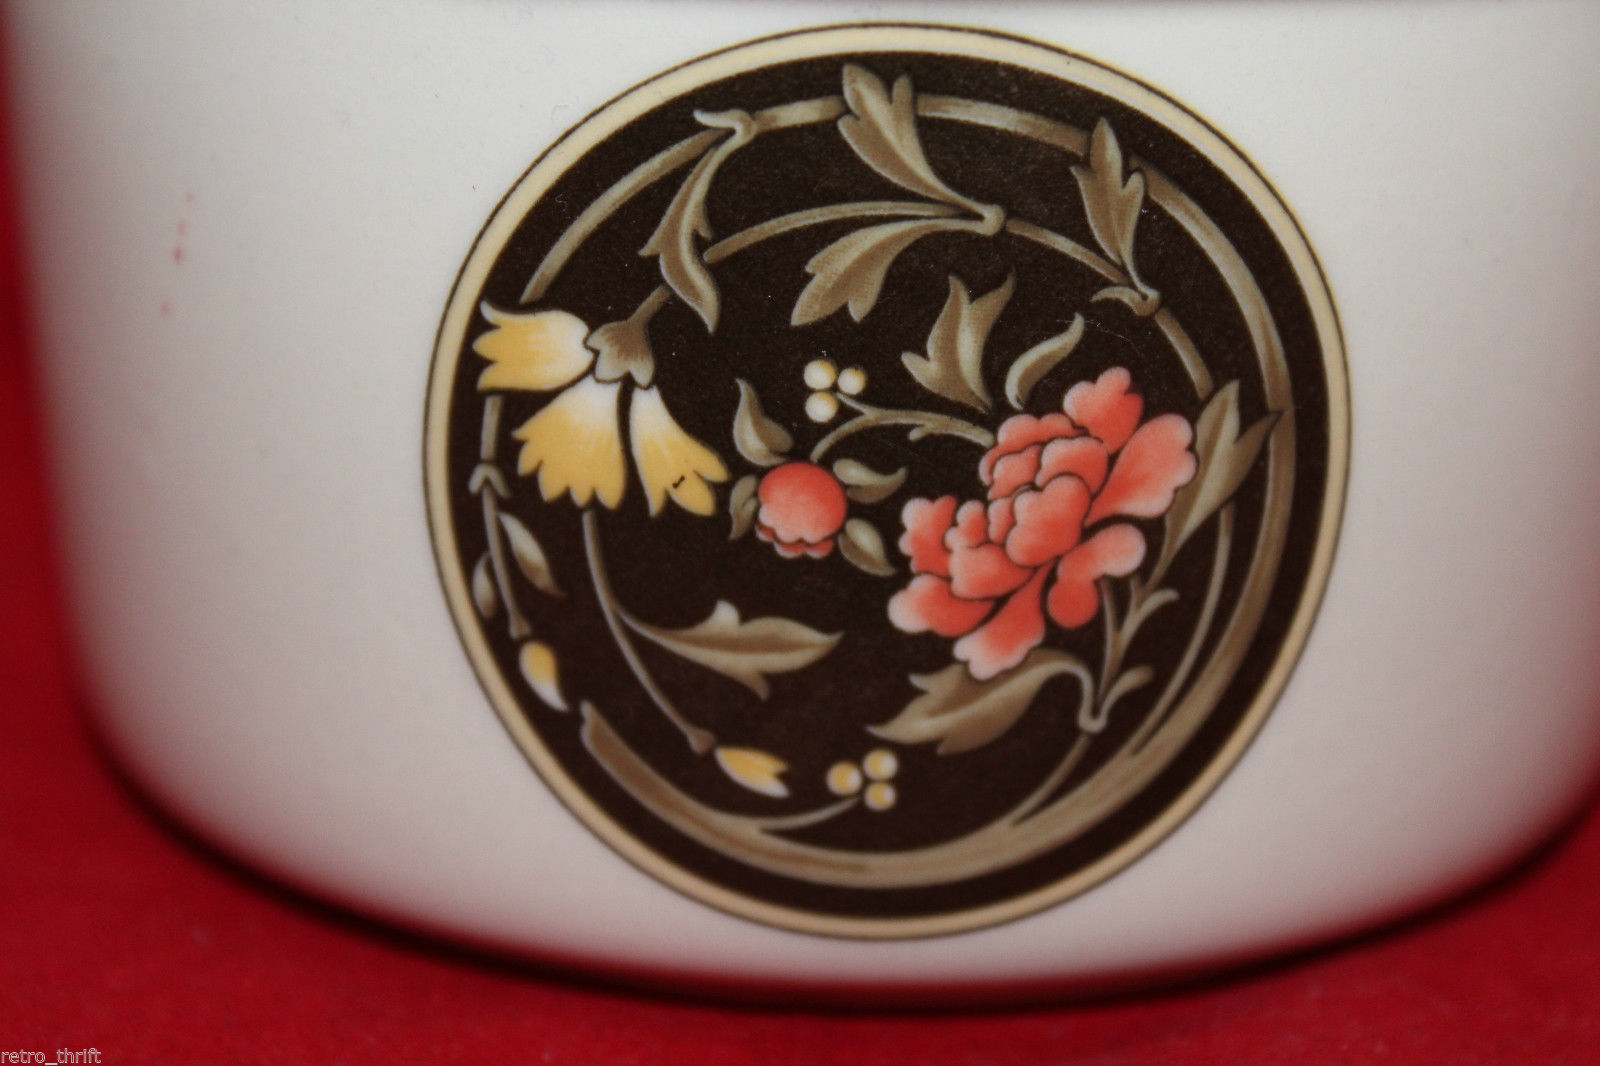 Vintage Wedgwood Mikado Open Sugar Bowl Brown Yellow Pink Flowers England Oven image 5